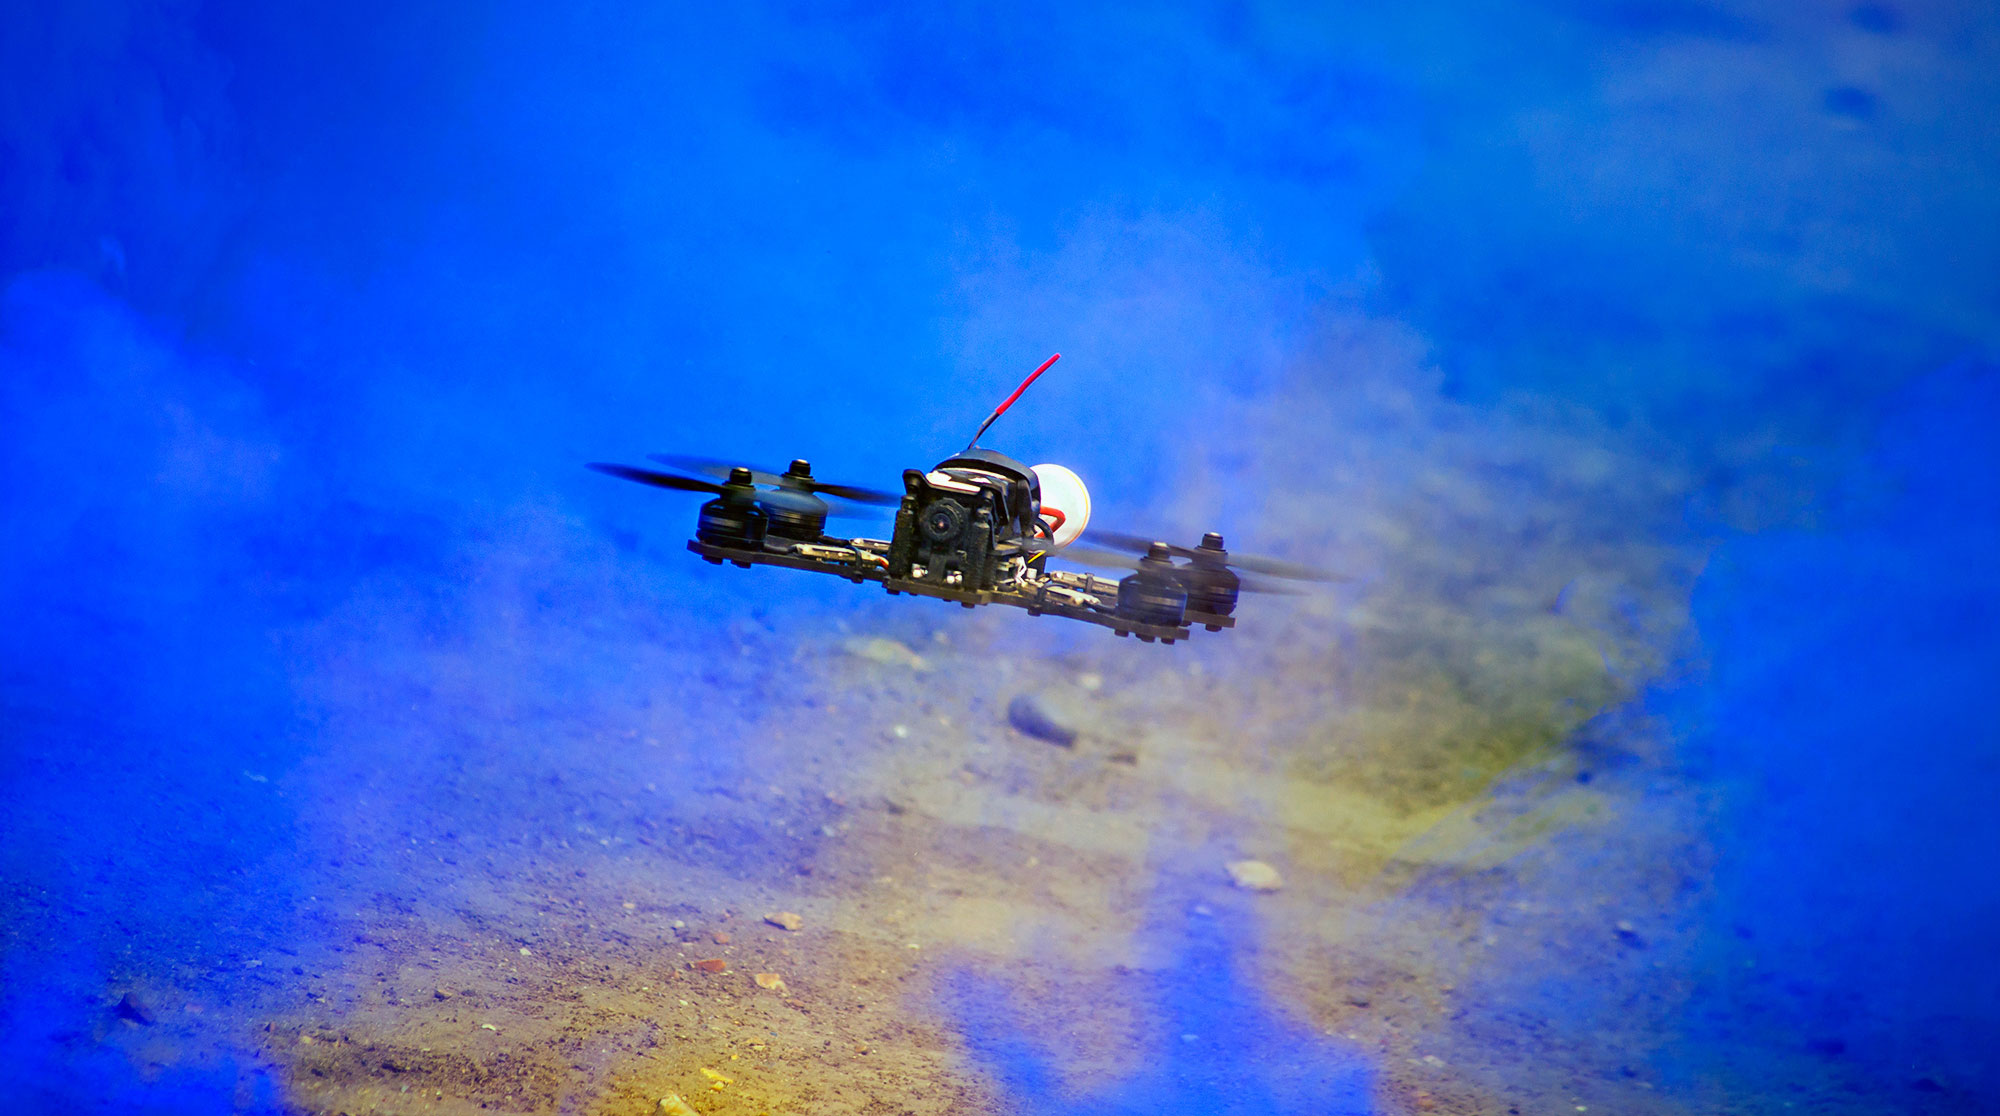 Quadcopter flying through blue smoke